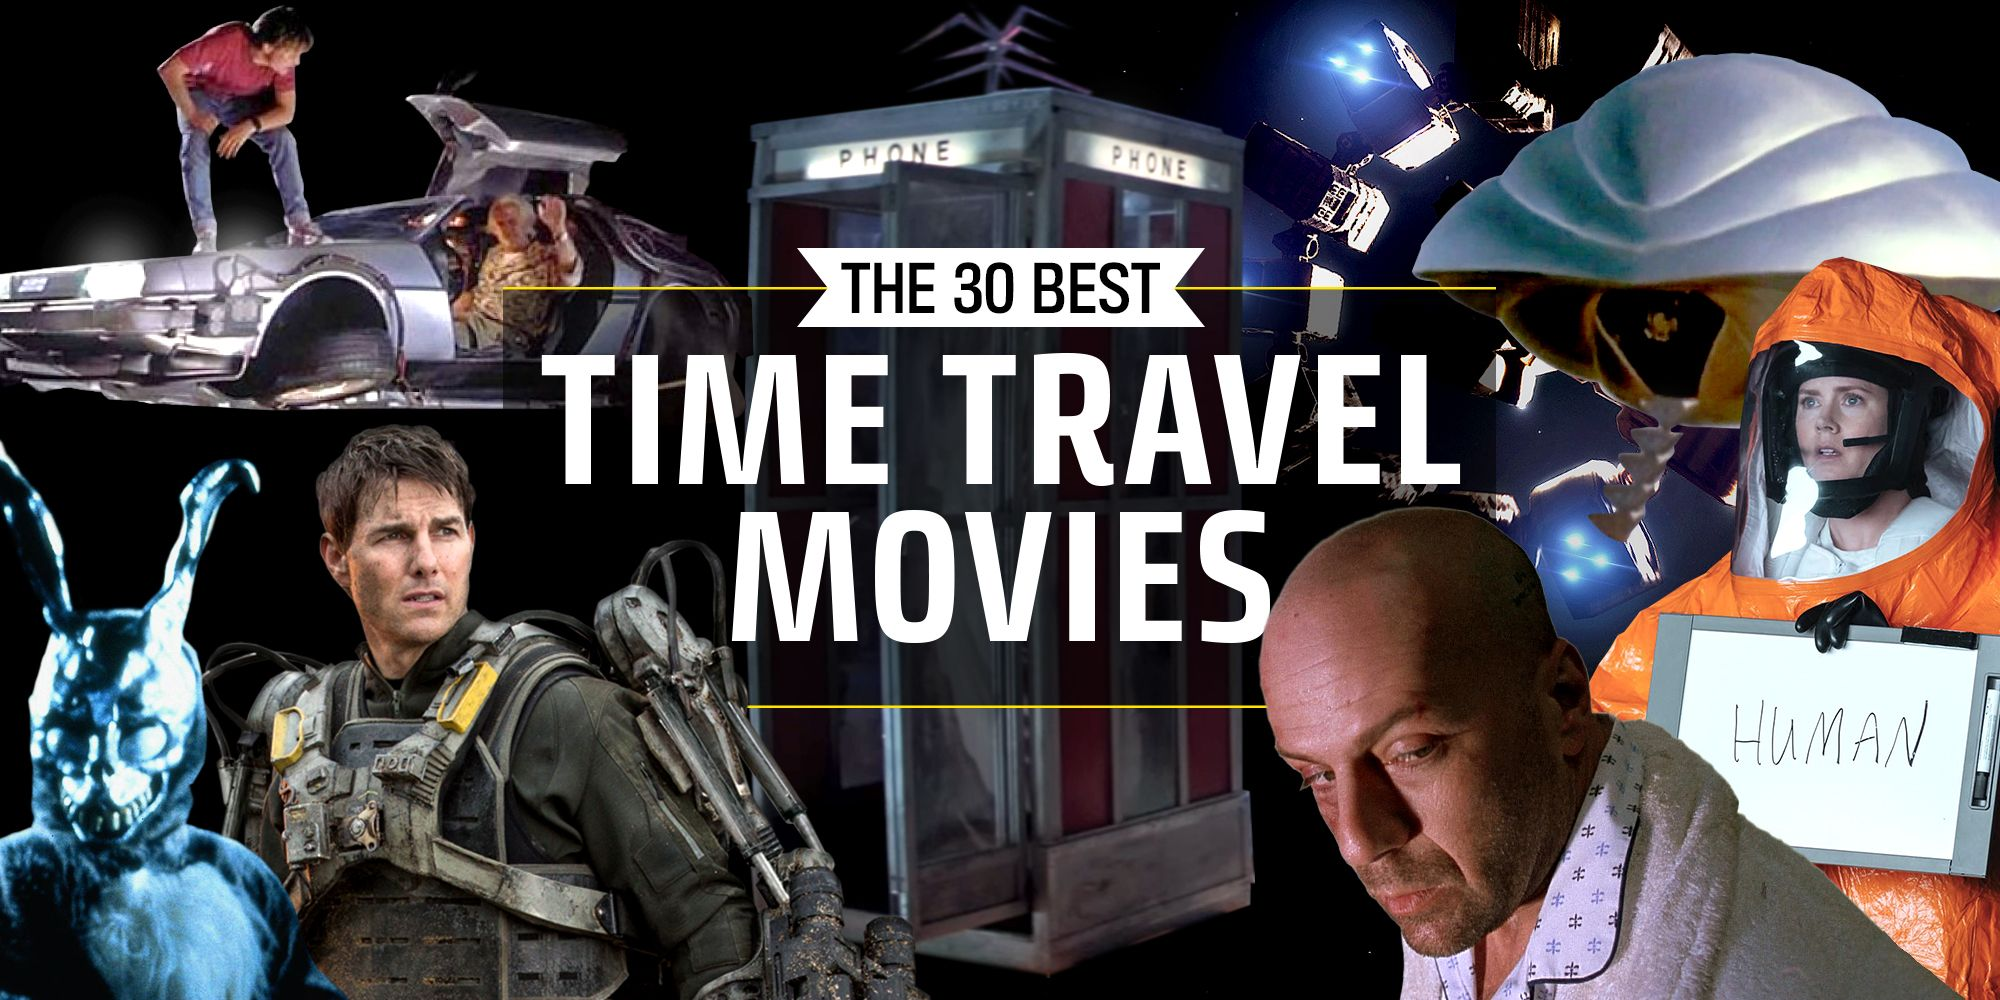 The 30 Best Time Travel Movies